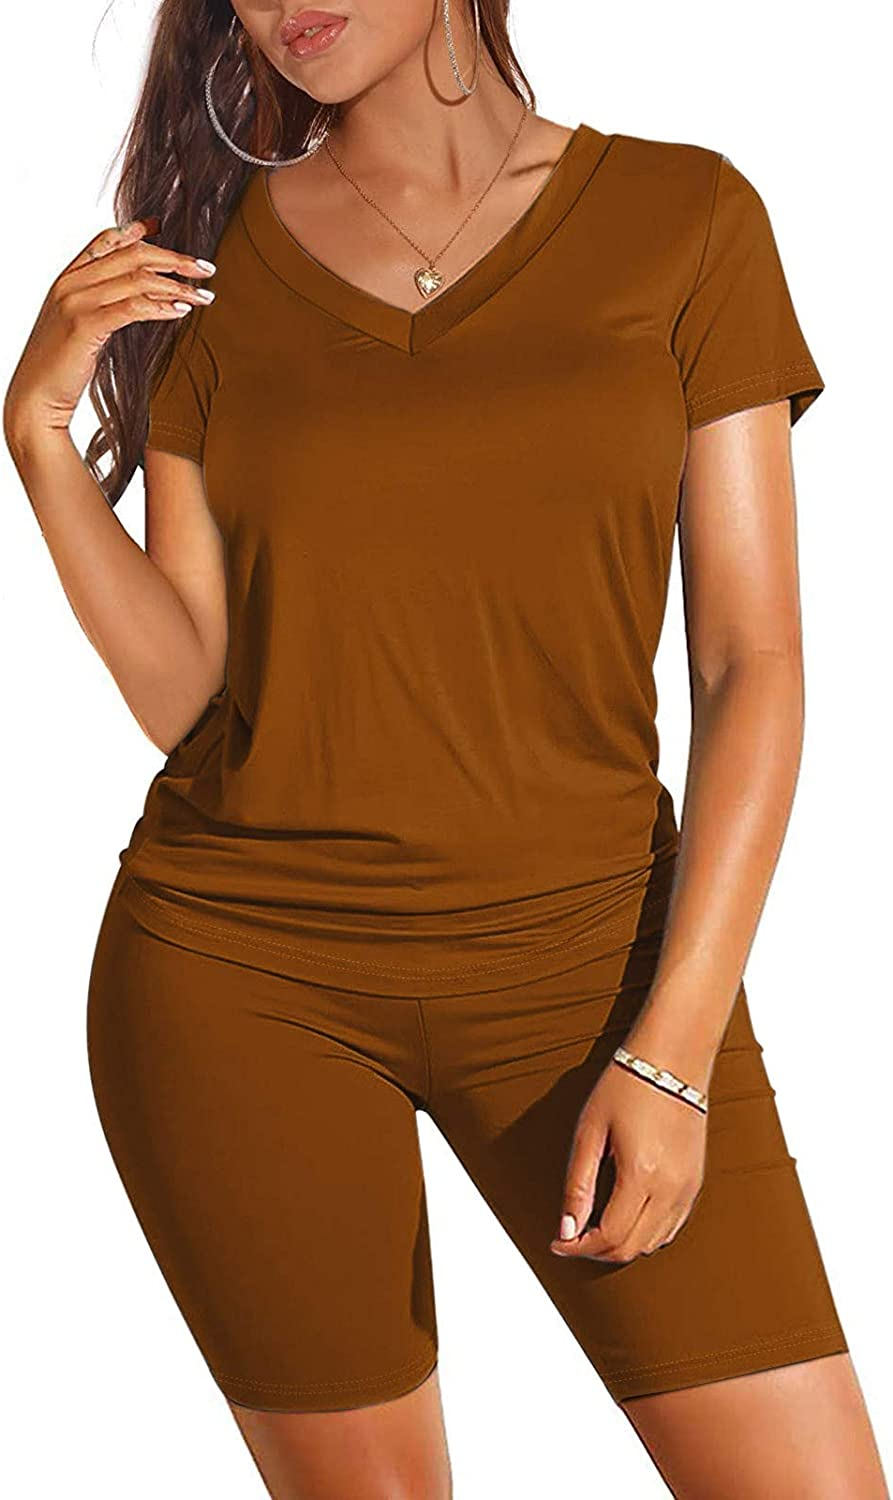 Women's Two Piece Outfits, Workout Sets for Women Seamless Two Piece Outfits Short Sleeve V Neck Biker Shorts Set